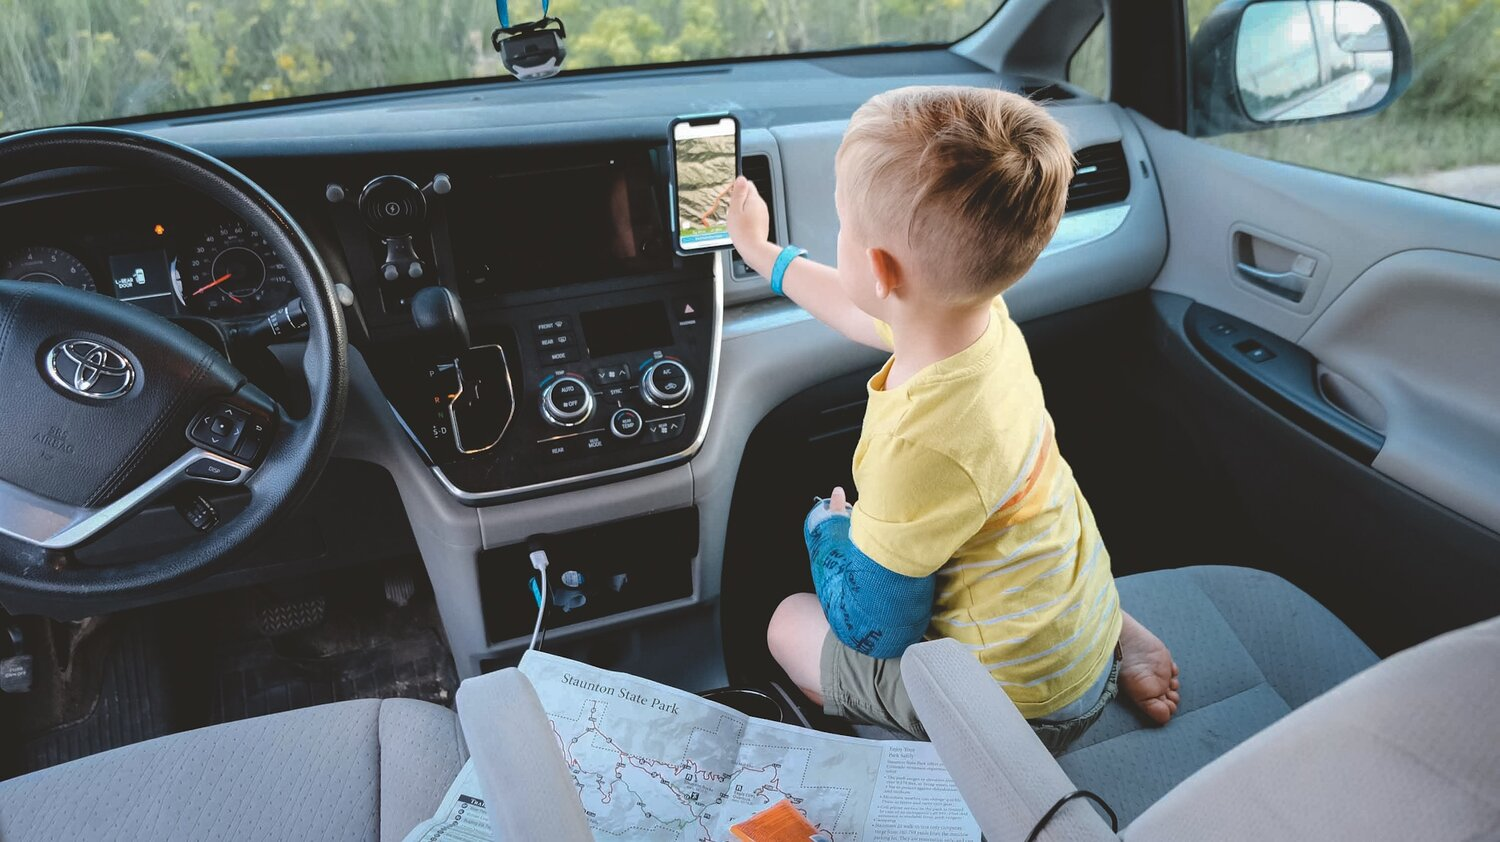 (We love the Steelie Orbiter Dash Kit to make navigation easy and hands free in the car when we are using maps)